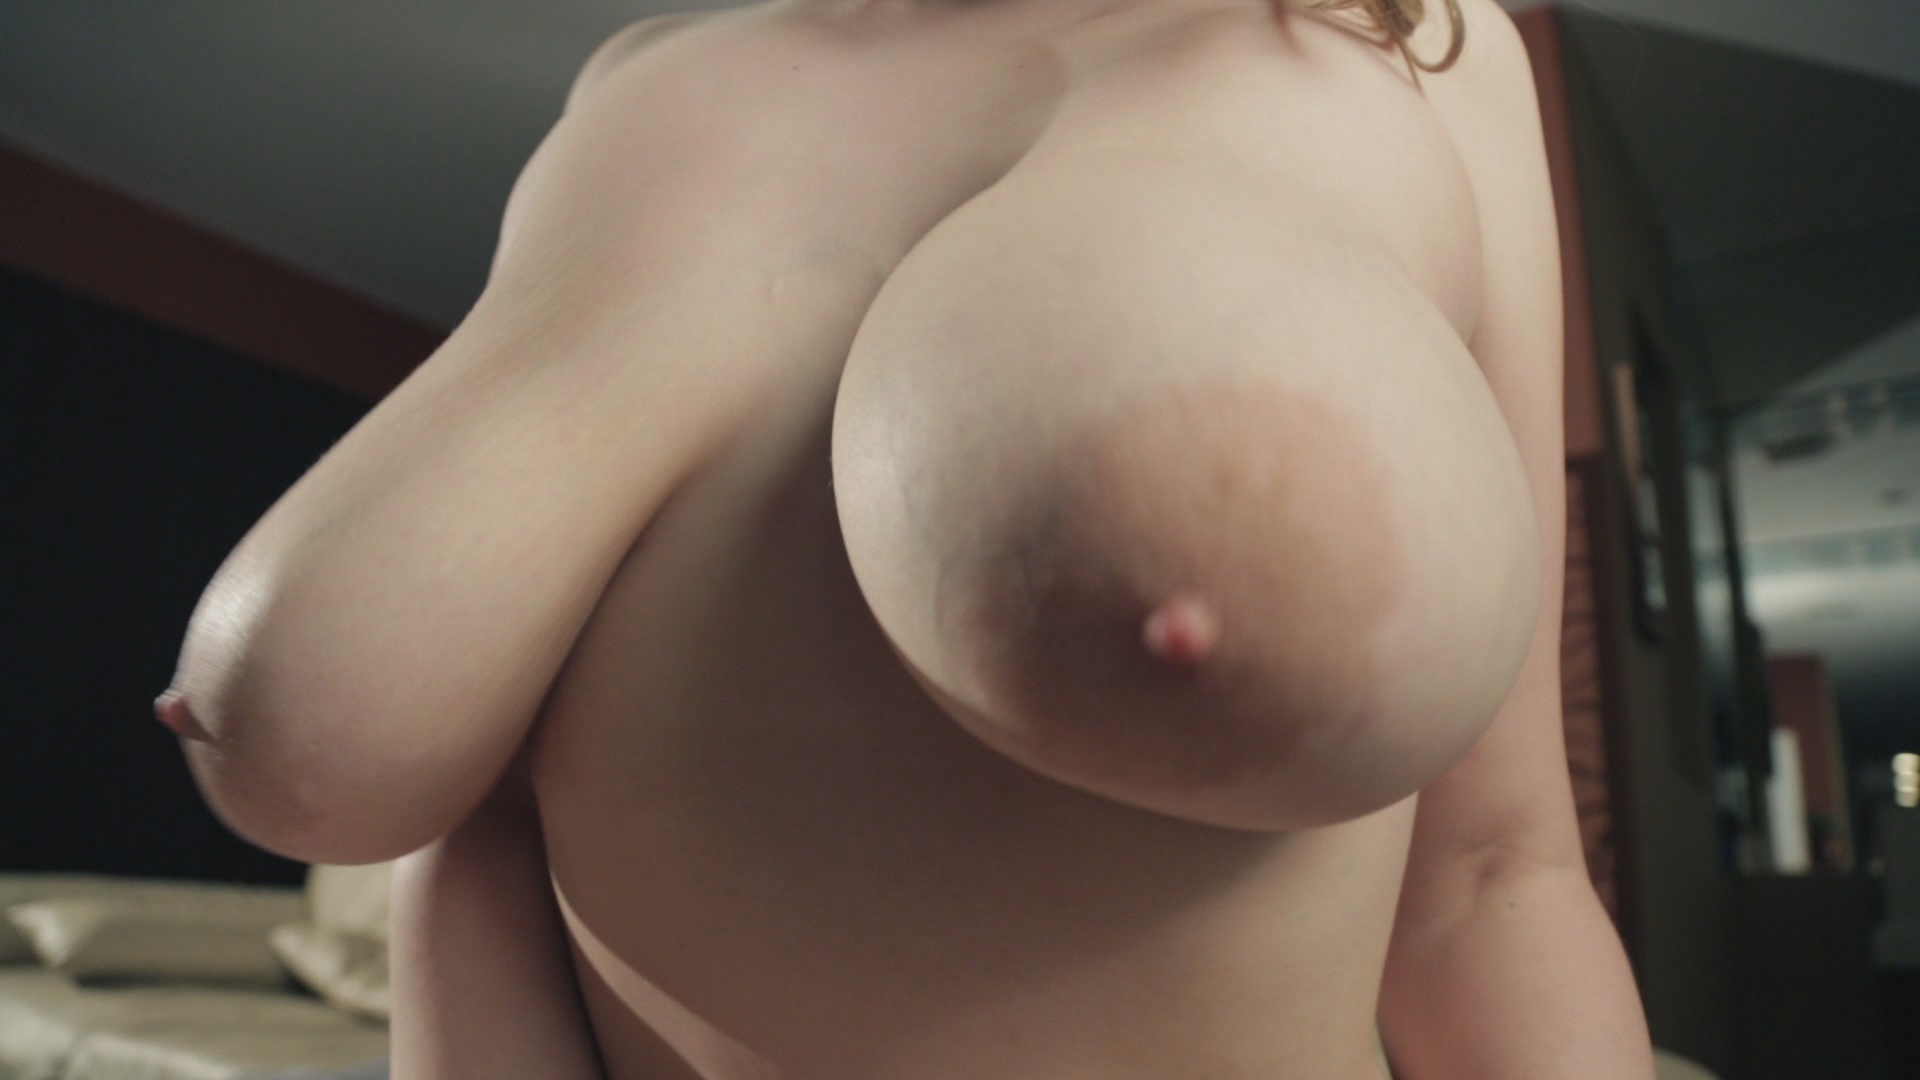 Big Girls Are Sexy 3 xvideos168269